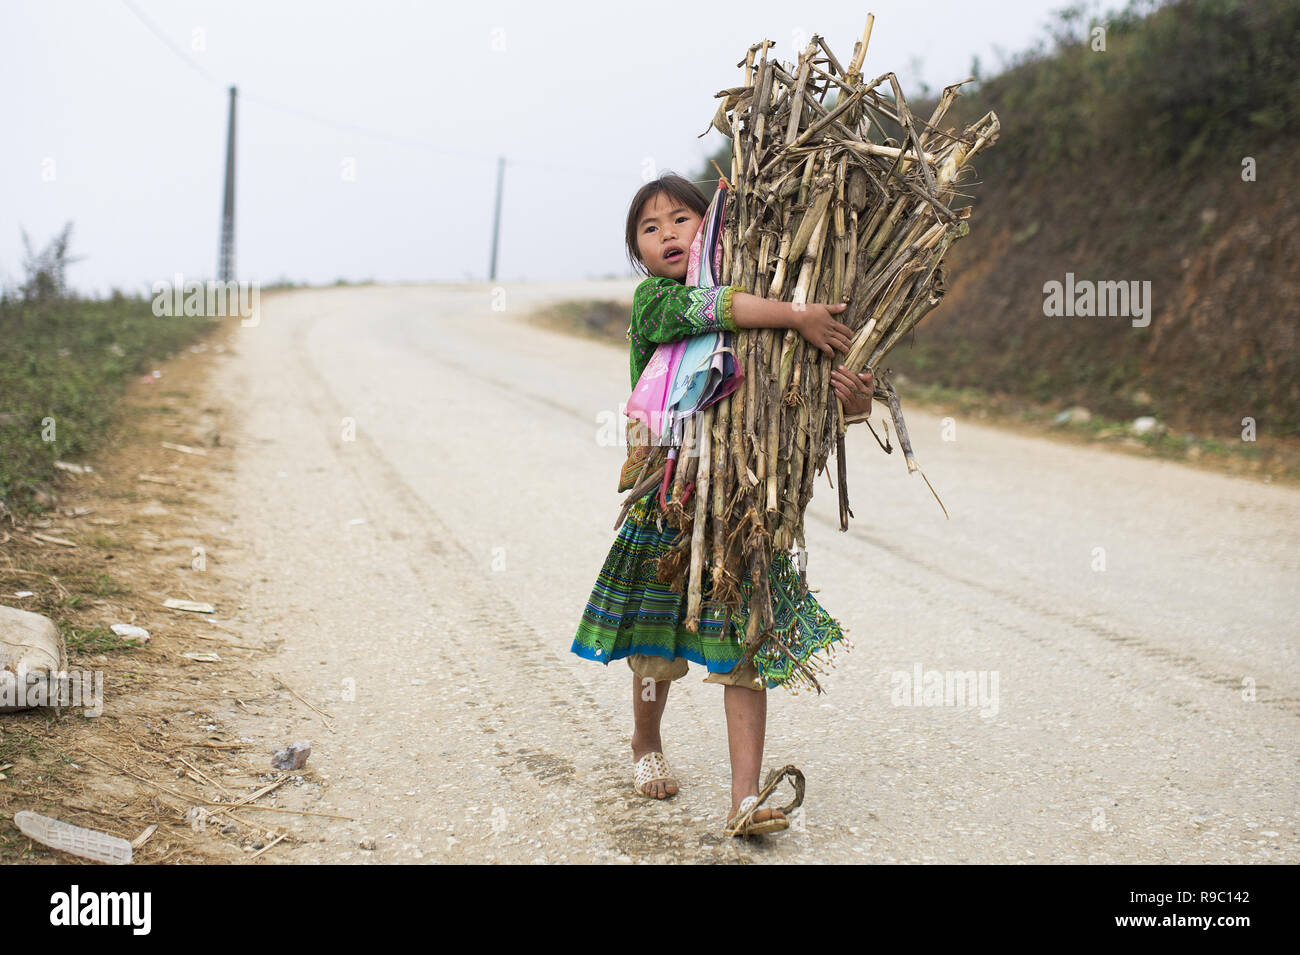 A girl of Hmong ethnicity is carrying some reeds collected on the hills of the beautiful Sa Pa in Vietnam. - Stock Image